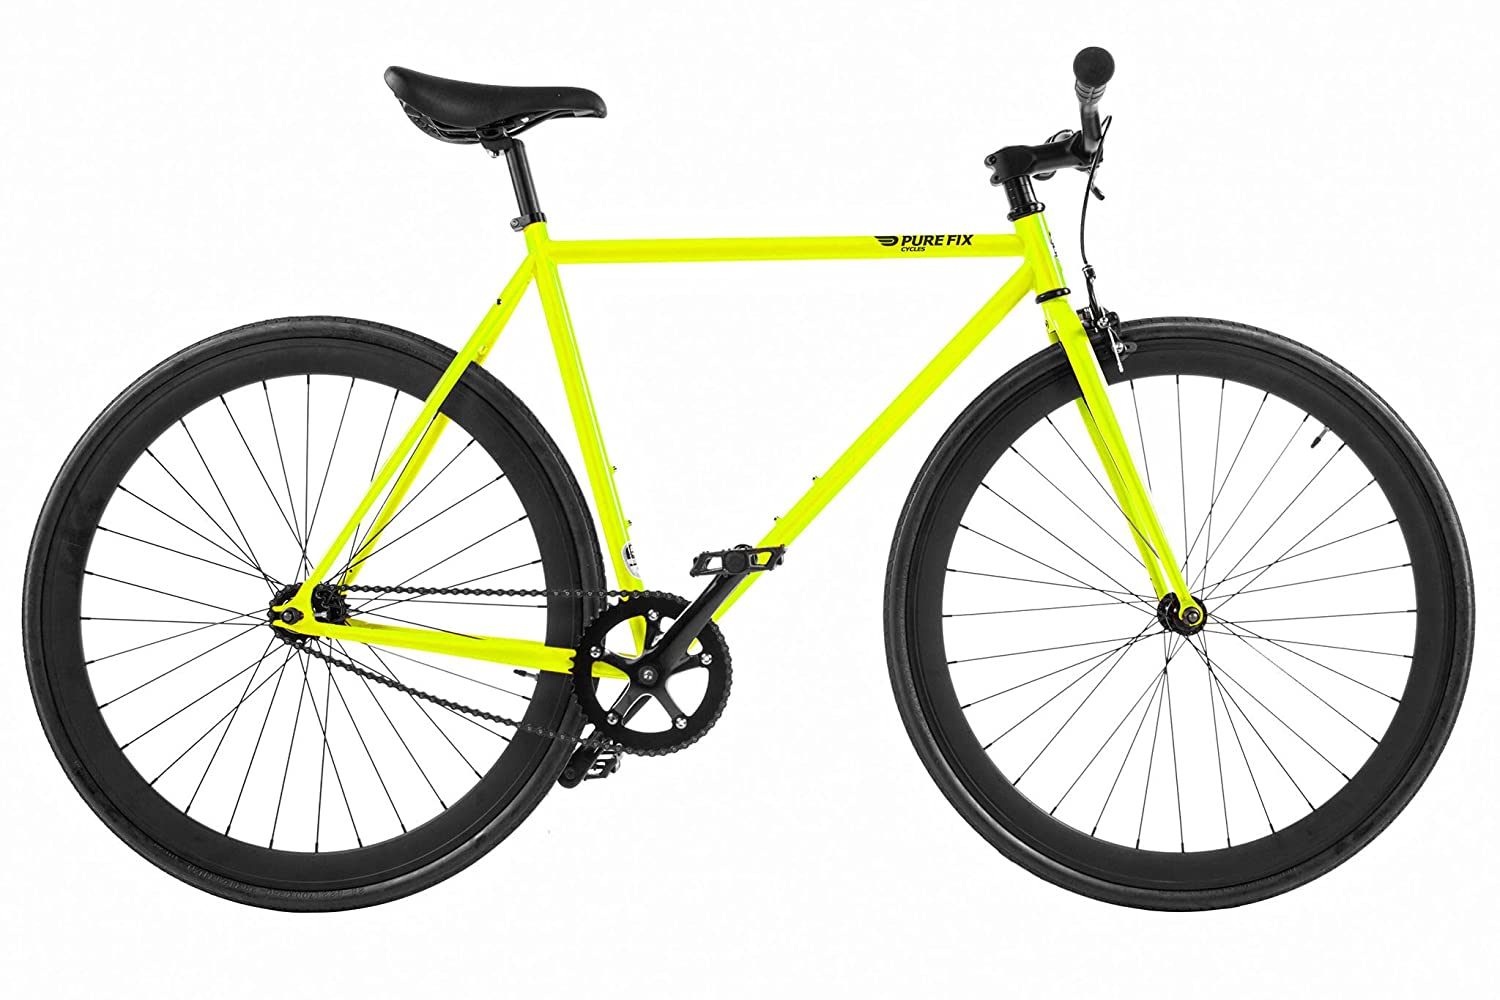 Cheap Fixed Gear Bikes For Sale Near Me Pure Fix Cycles Glow in the